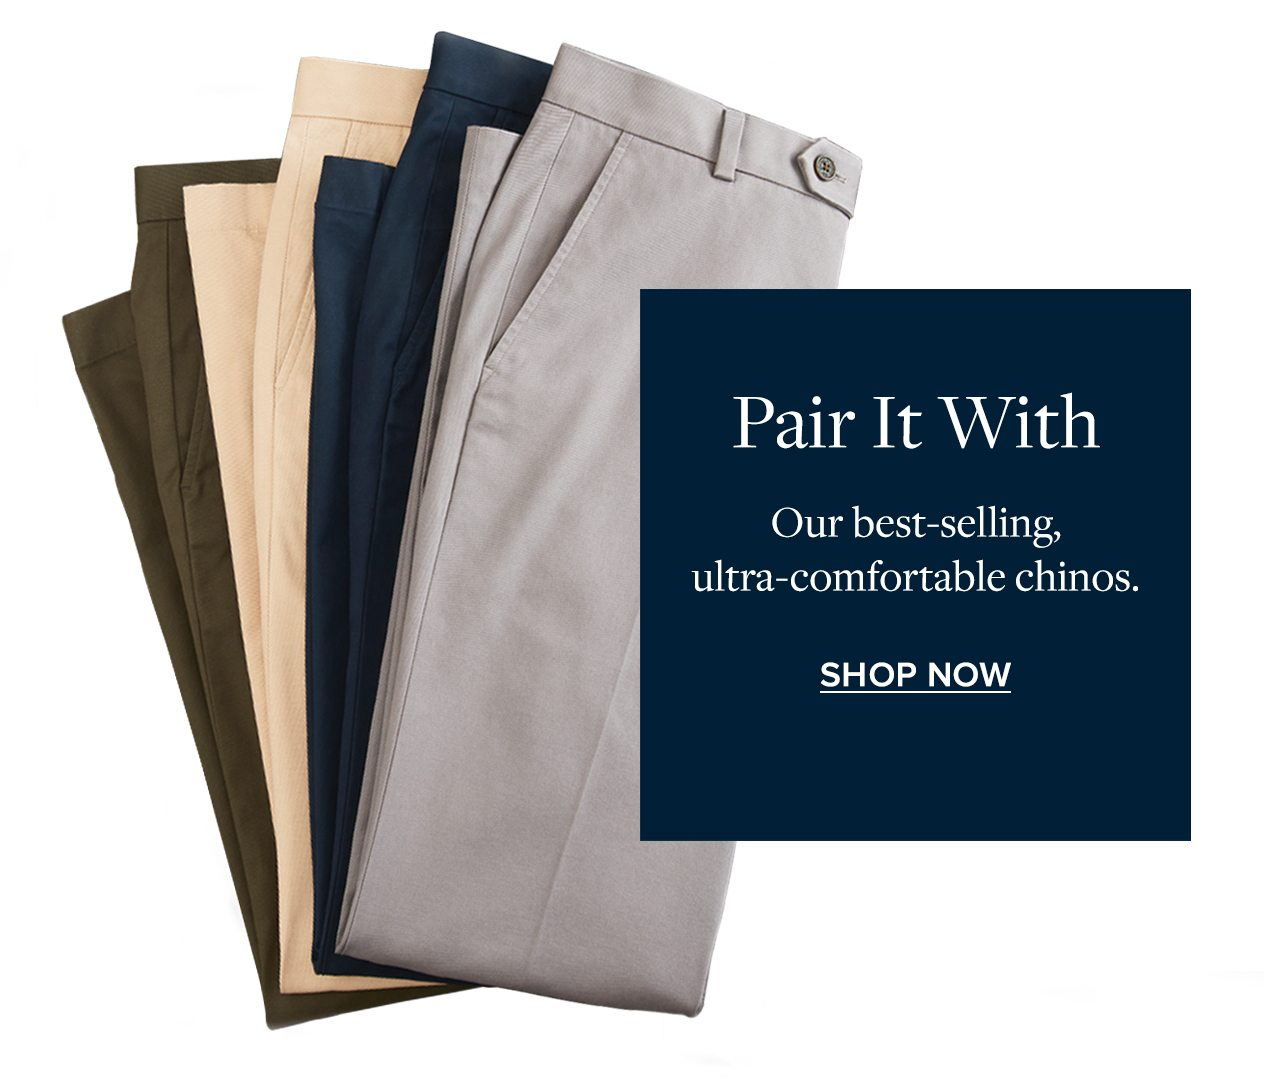 Pair It With Our best-selling, ultra-comfortable chinos. Shop Now